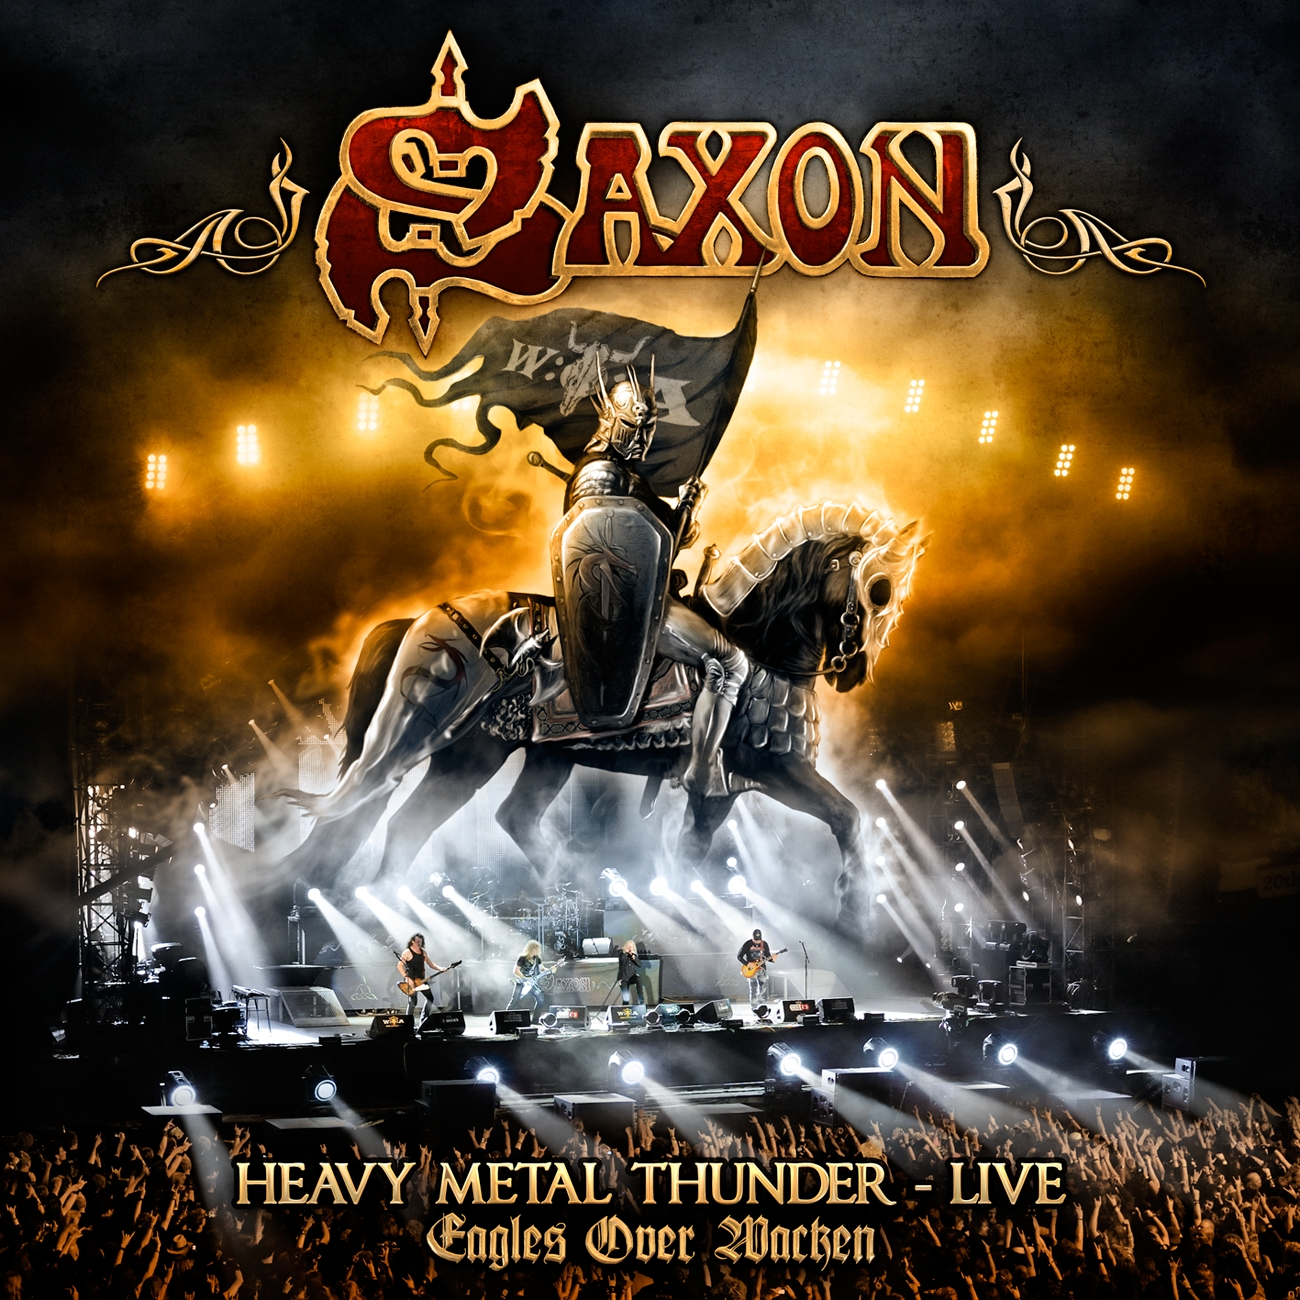 Saxon: Heavy Metal Thunder - Live - Eagles Over Wacken